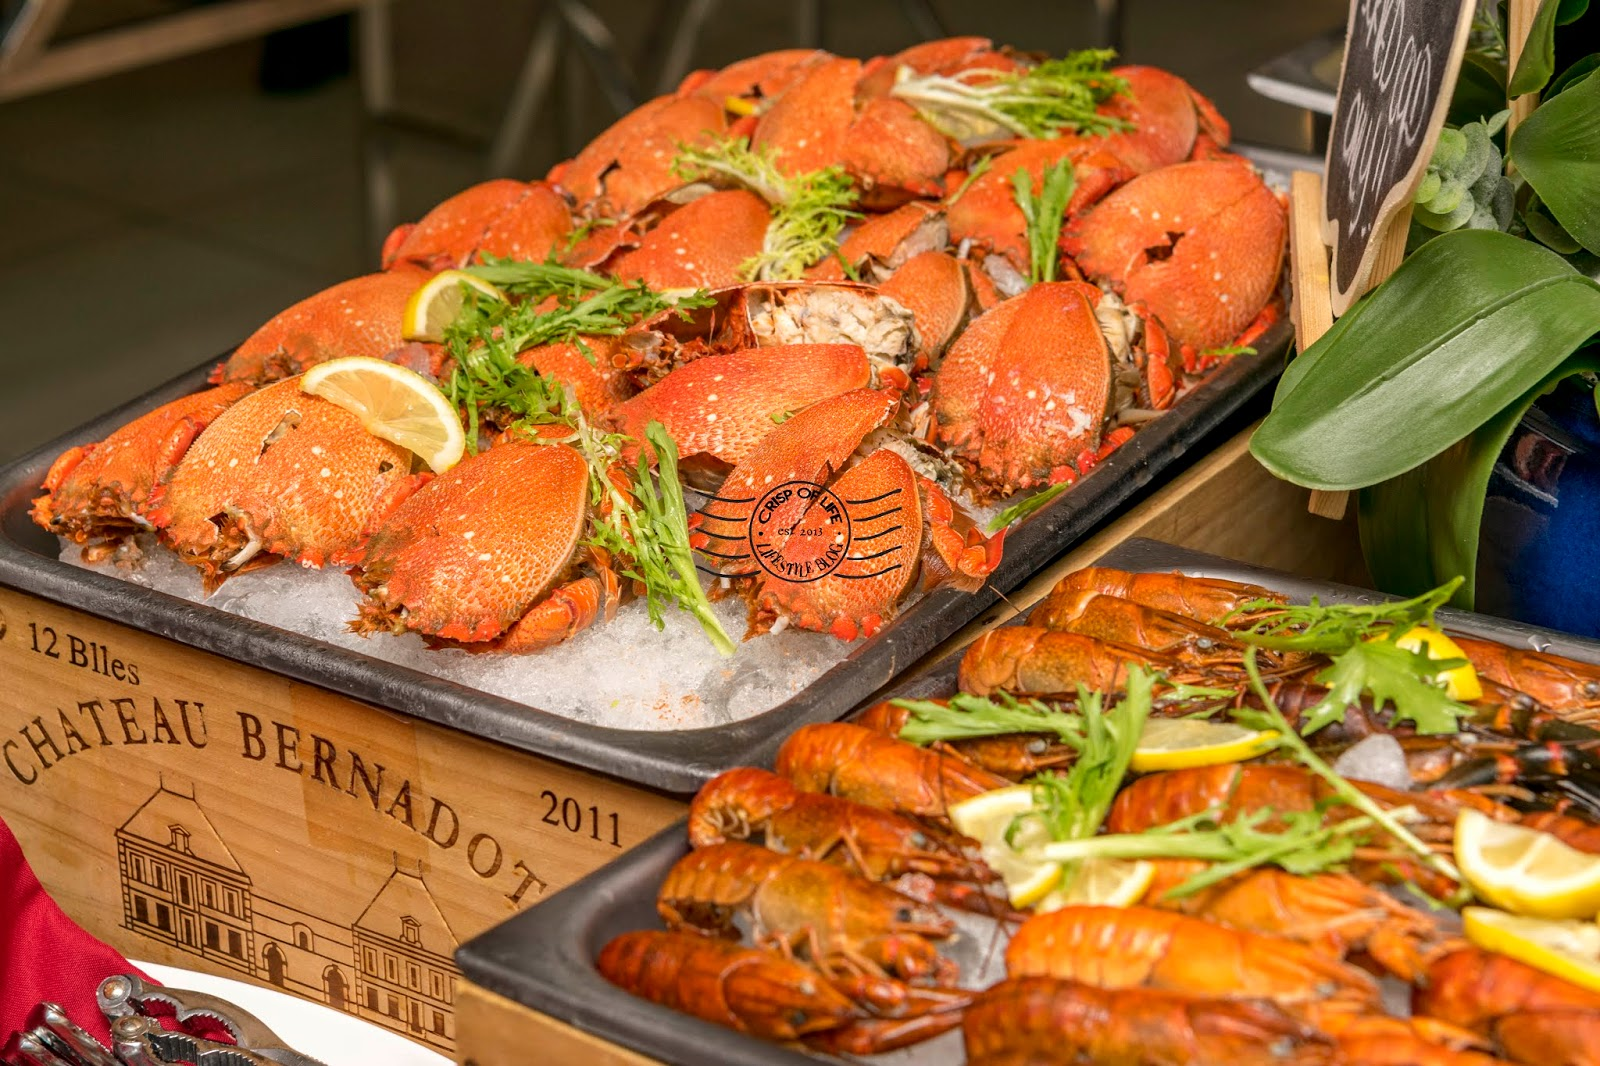 20% Discount for Iconic Hotel Surf & Turf Buffet Dinner with Code COL_STBD